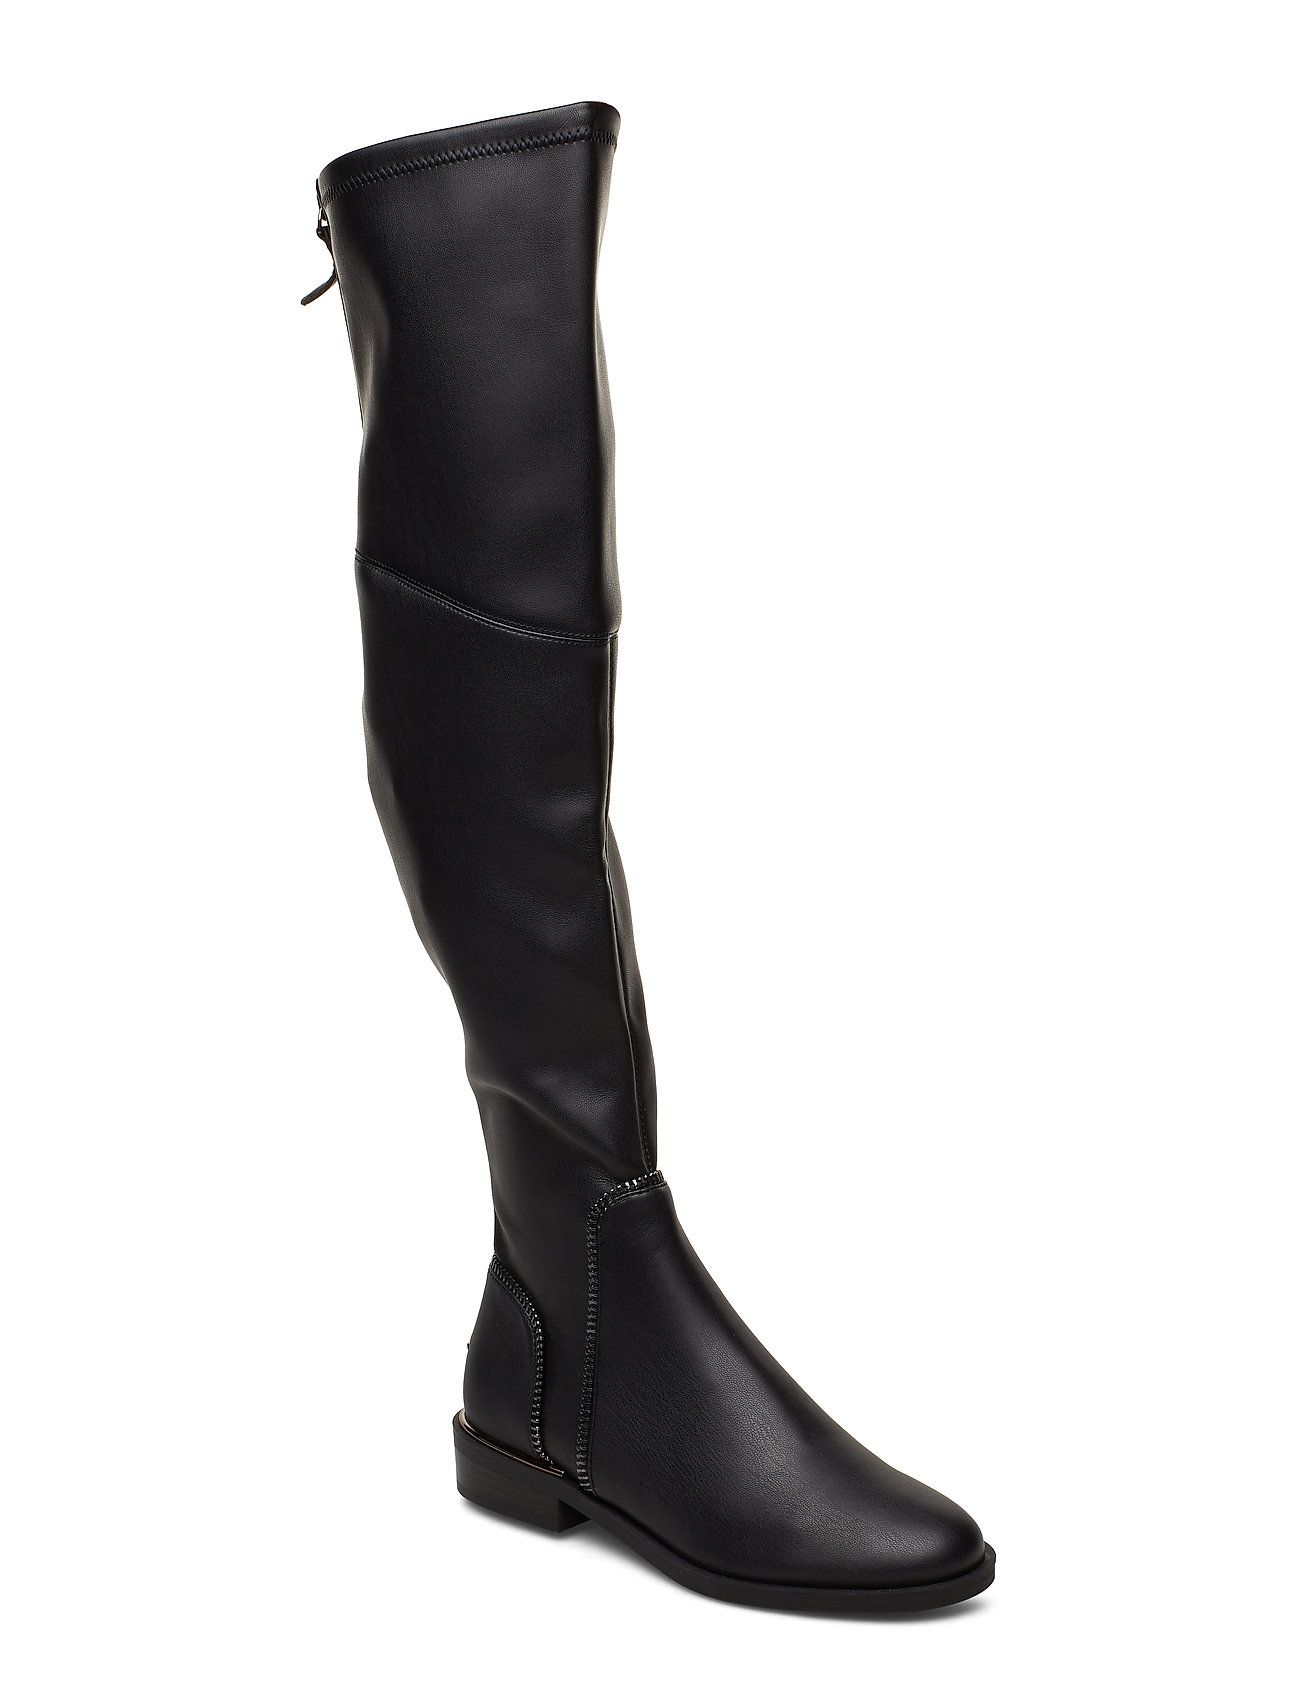 GUESS DACIAN/STIVALE (BOOT)/LEATHER - BLACK